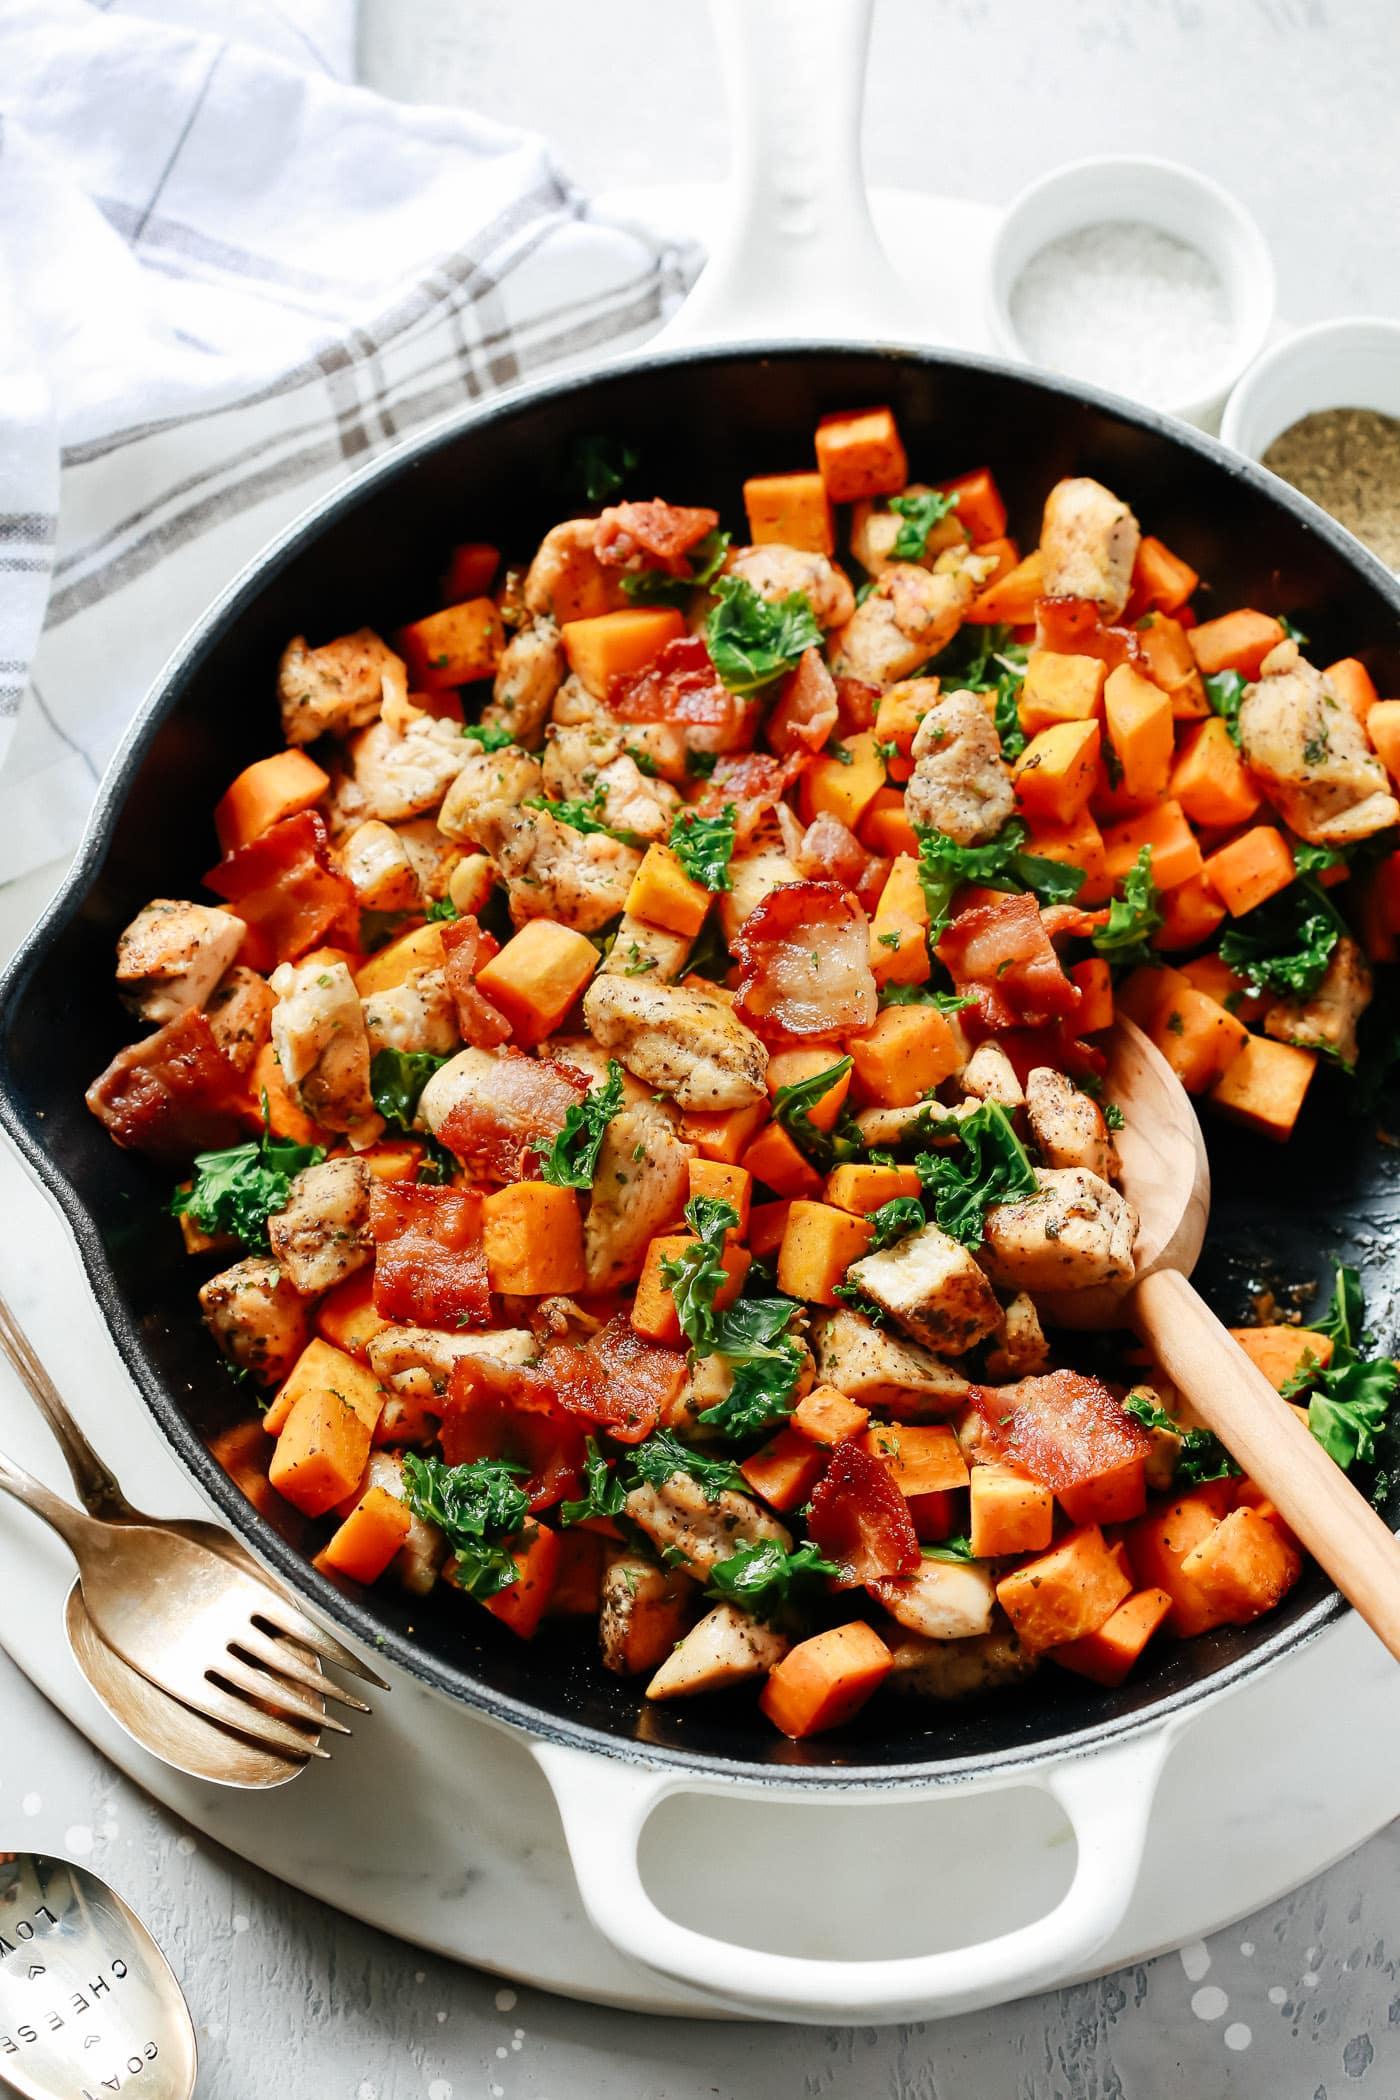 Sweet Potato Chicken Skillet with Kale and Bacon from Primavera Kitchen on foodiecrush.com